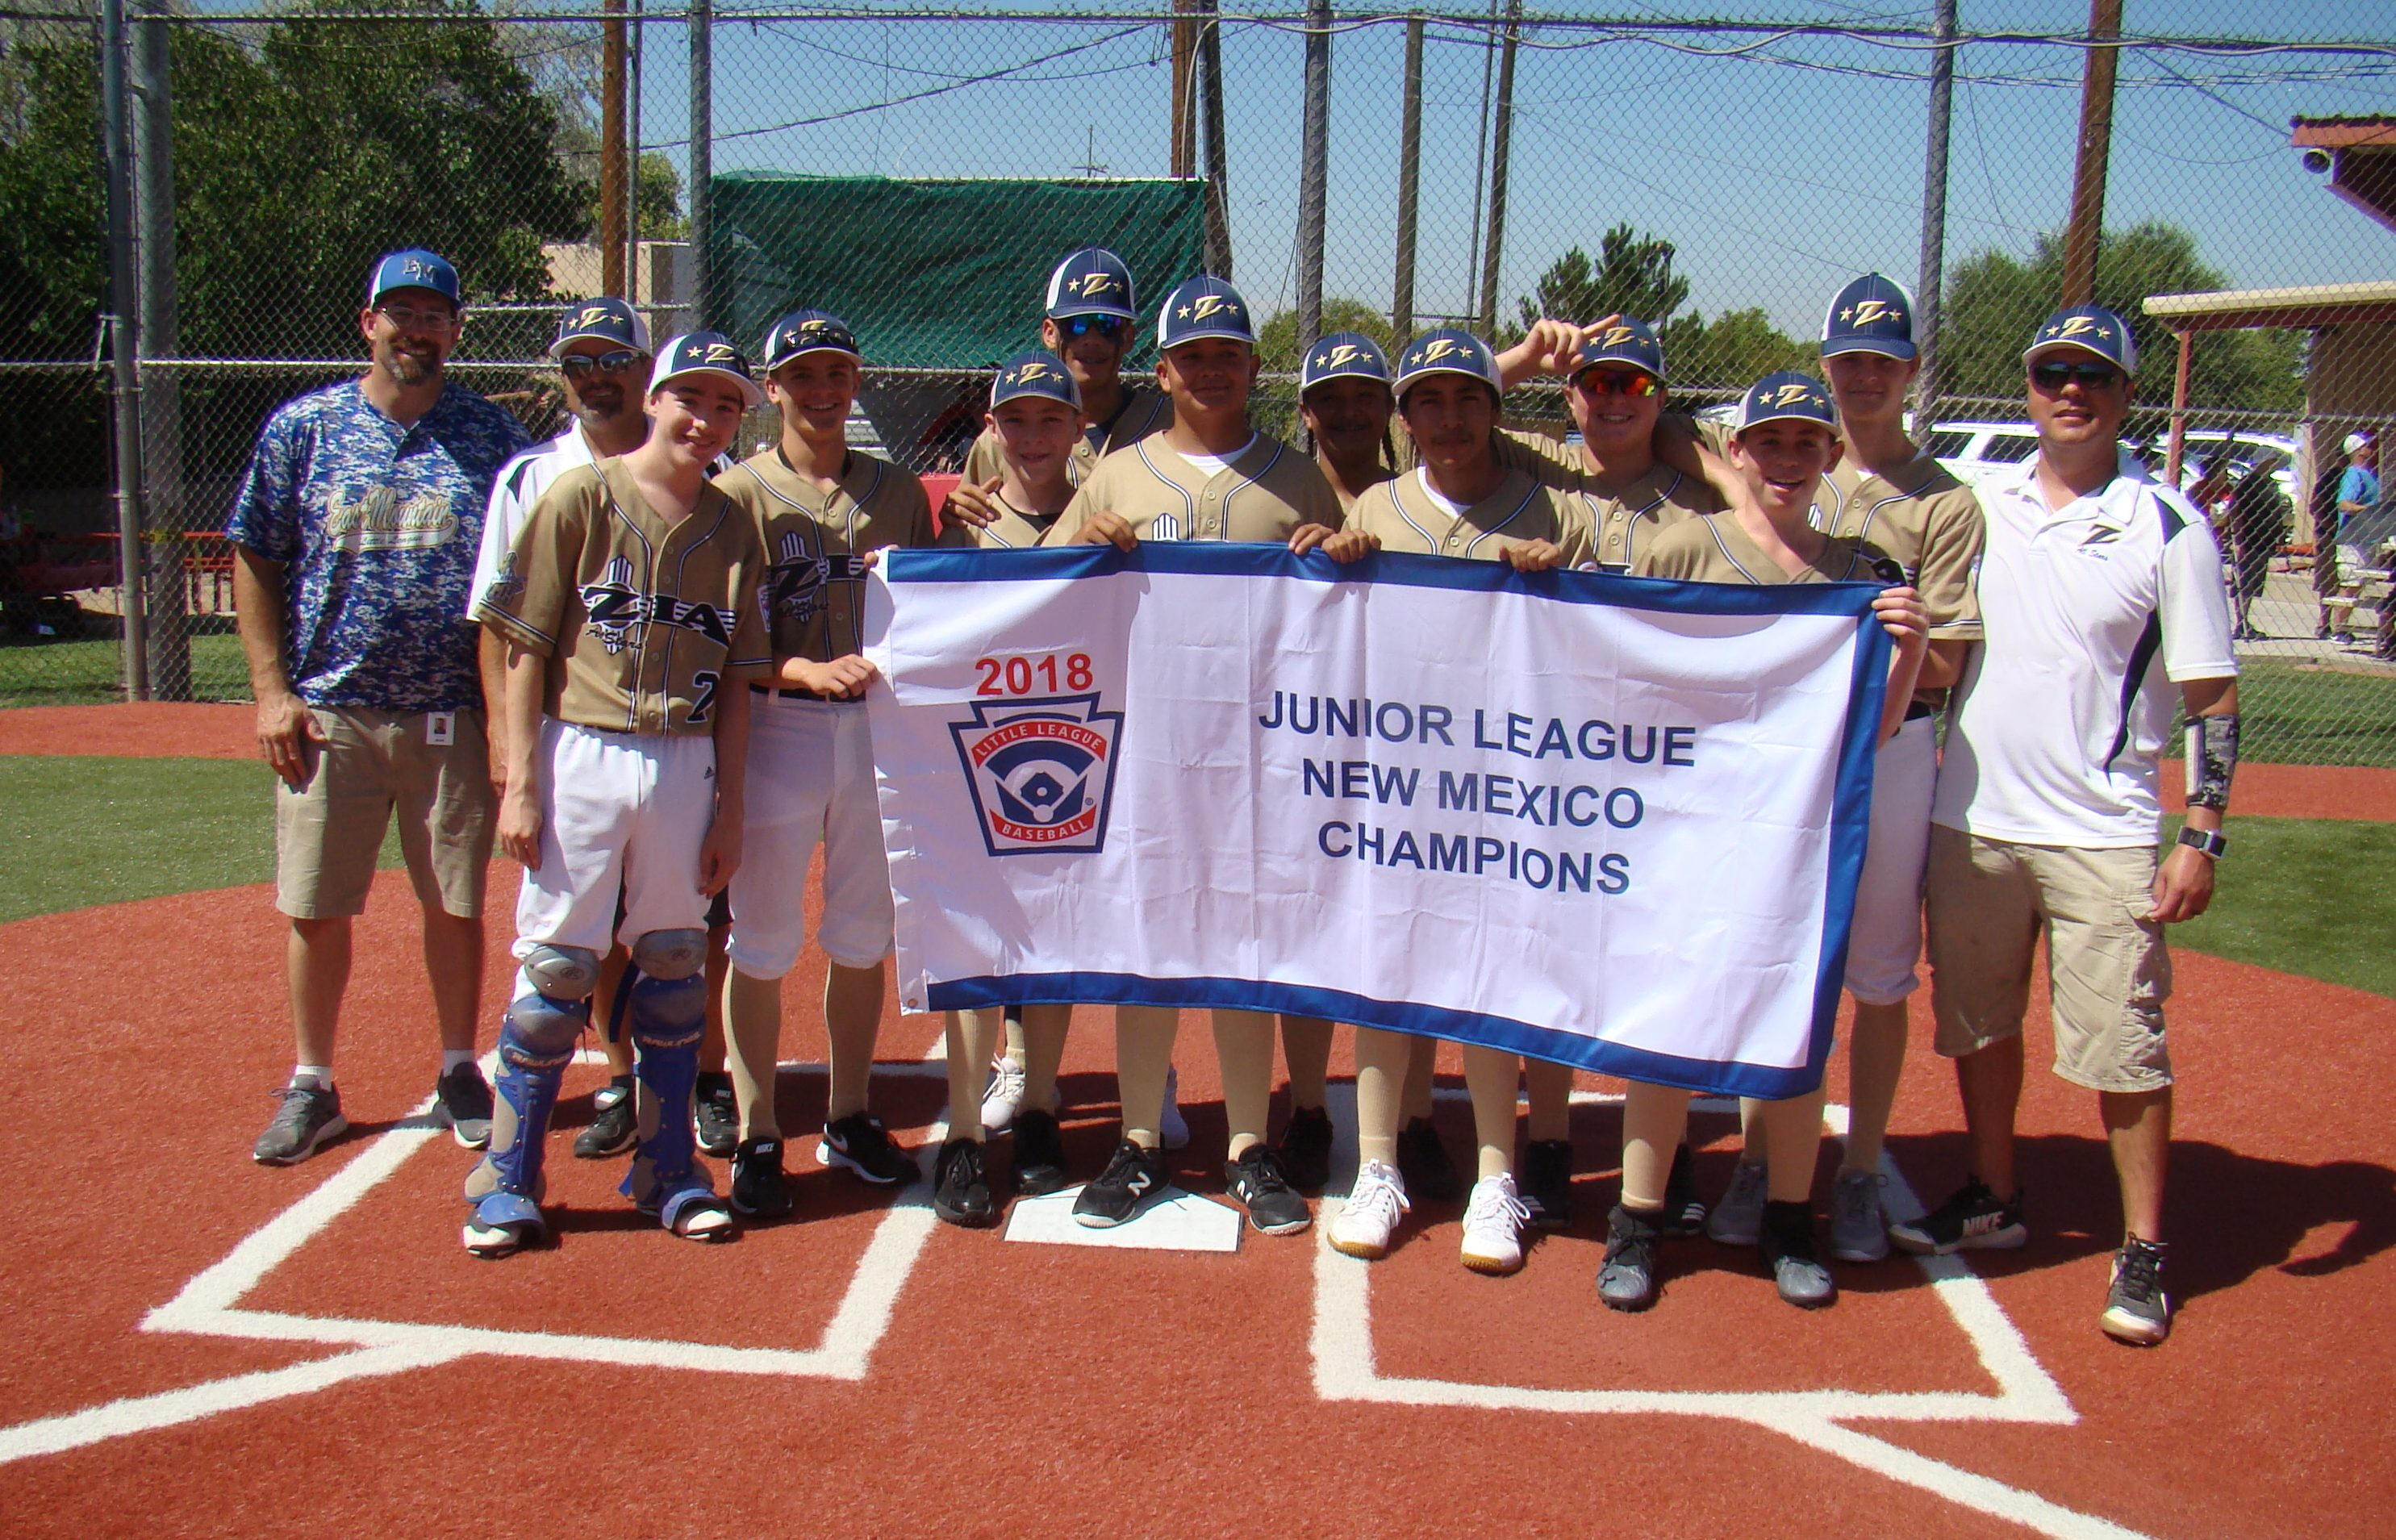 East Mountain players, chemistry lift Little League combo team to state title